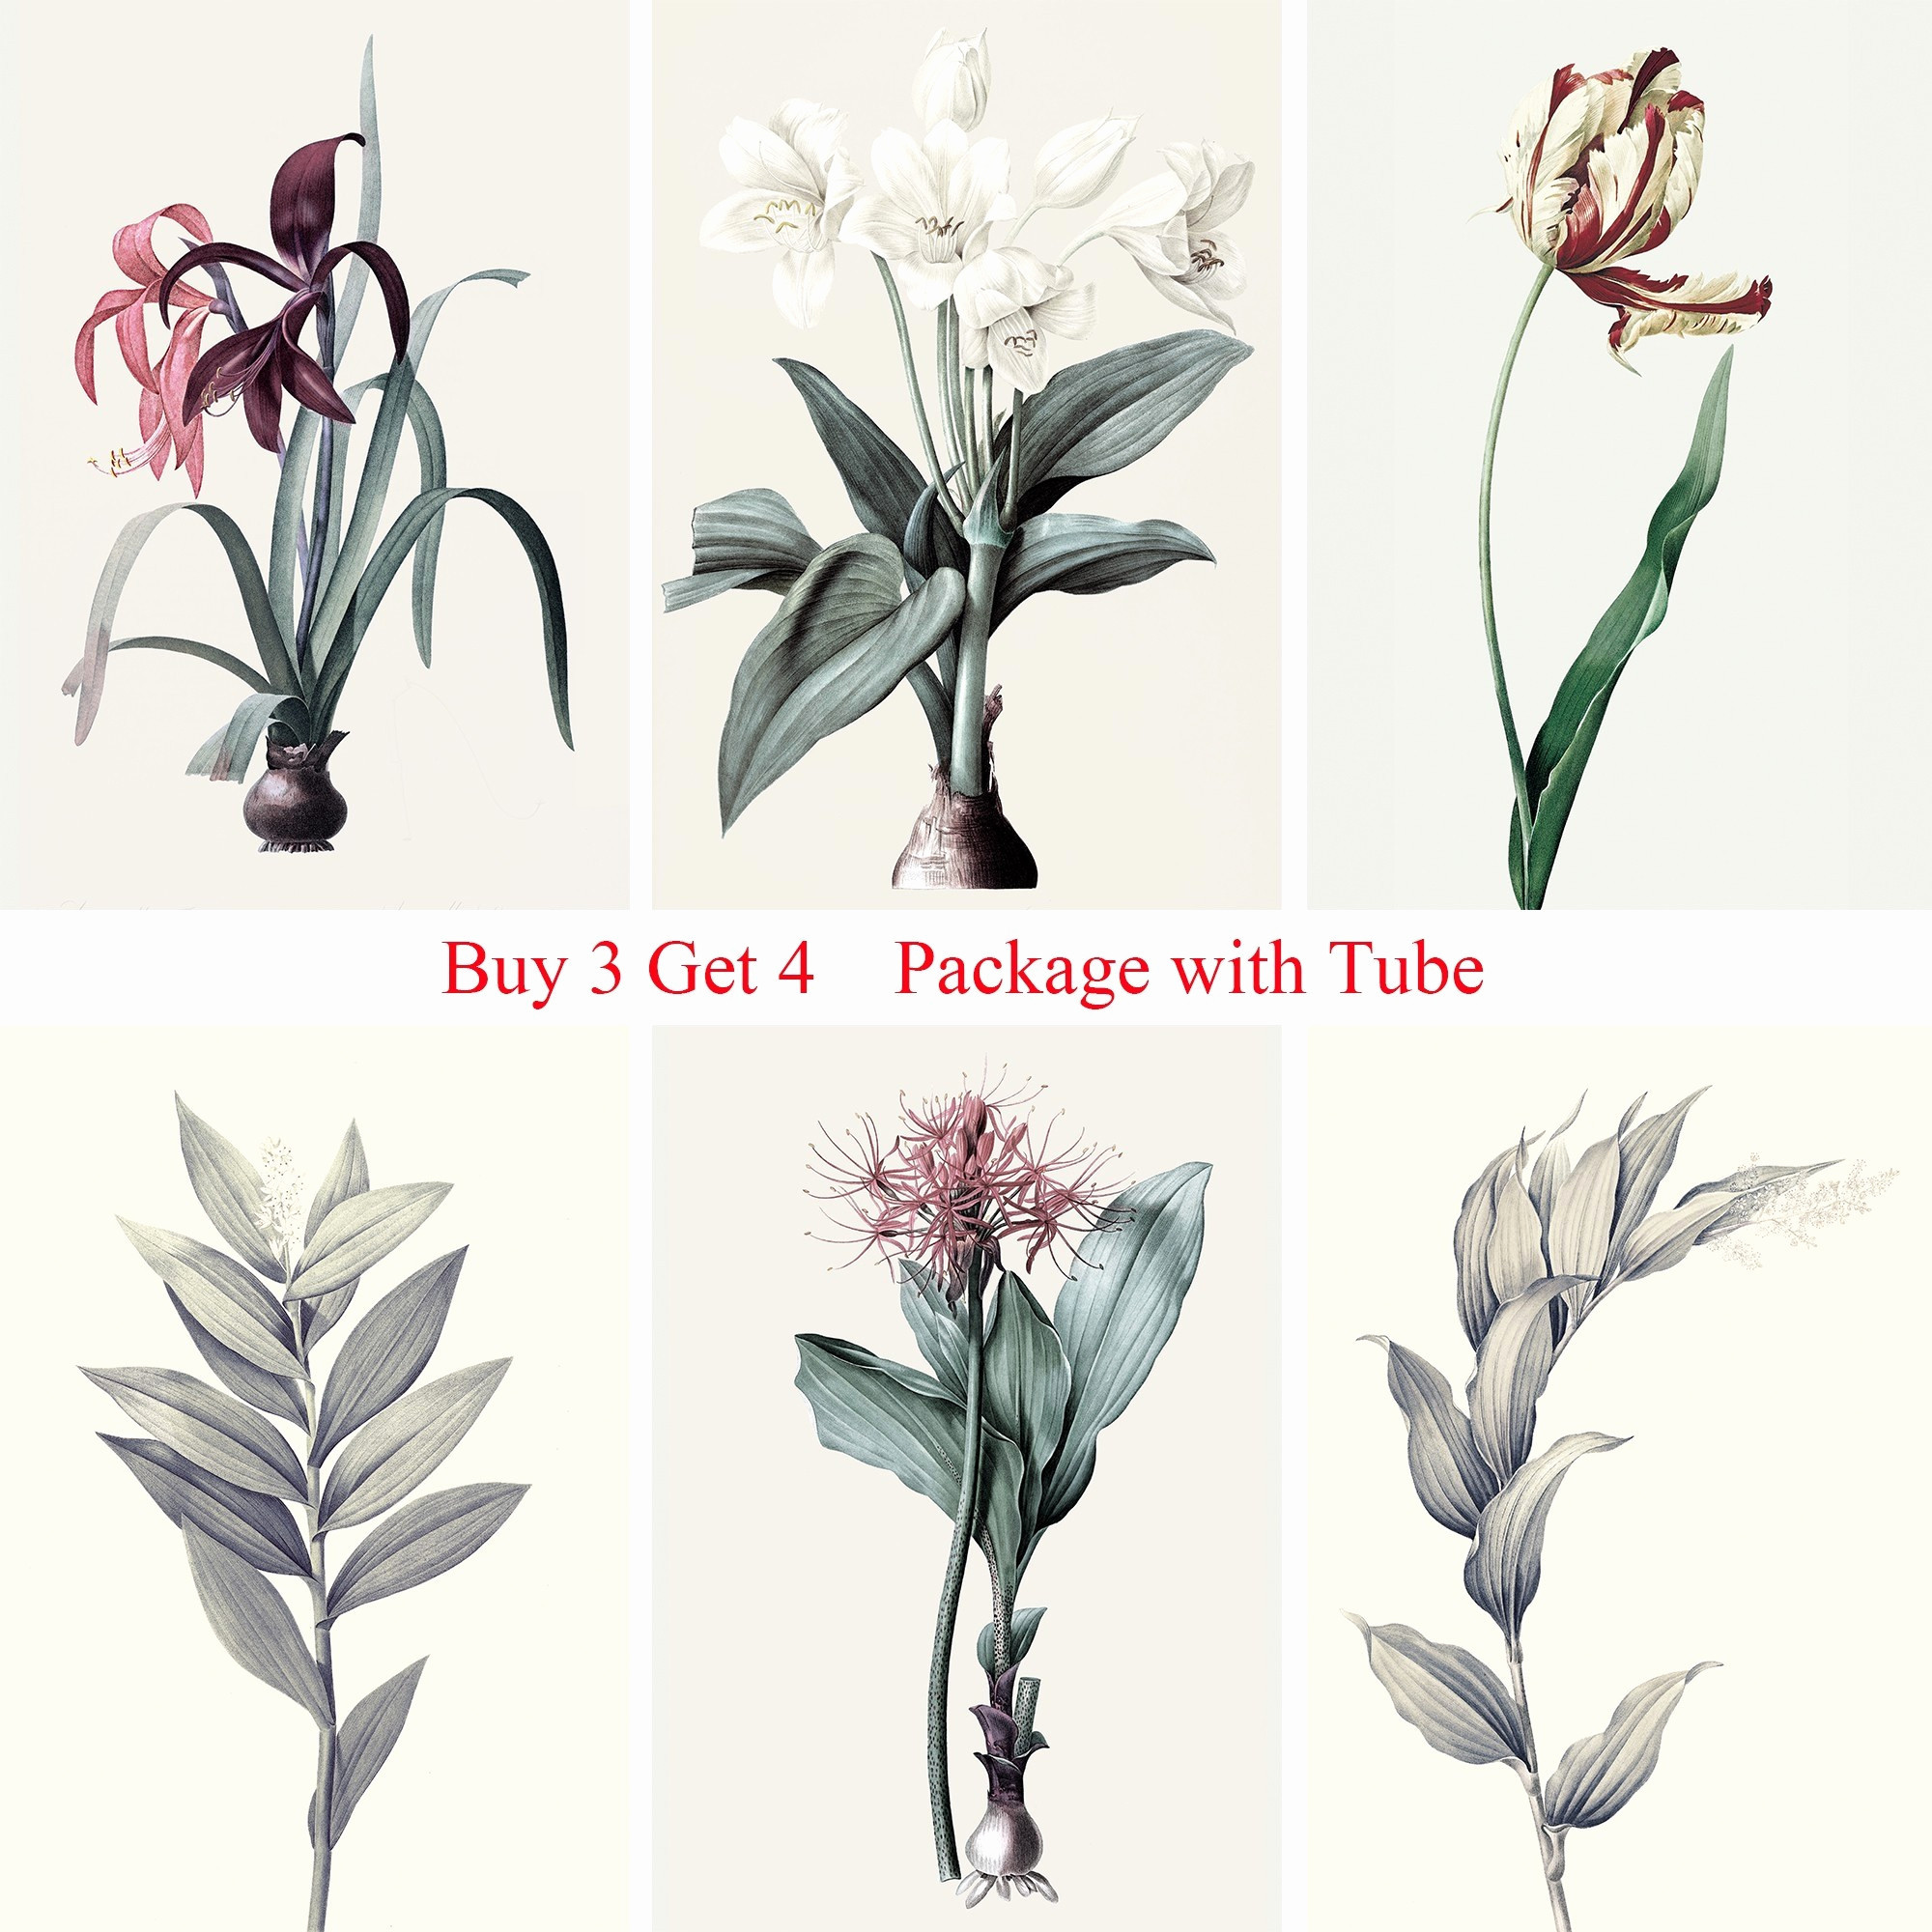 25 Nice Hanging Wall Vase 2021 free download hanging wall vase of flower wall decor luxe h vases wall hanging flower vase newspaper i in flower wall decor ac289lagant flower wall art flower decor metal flower art metal wall decor of